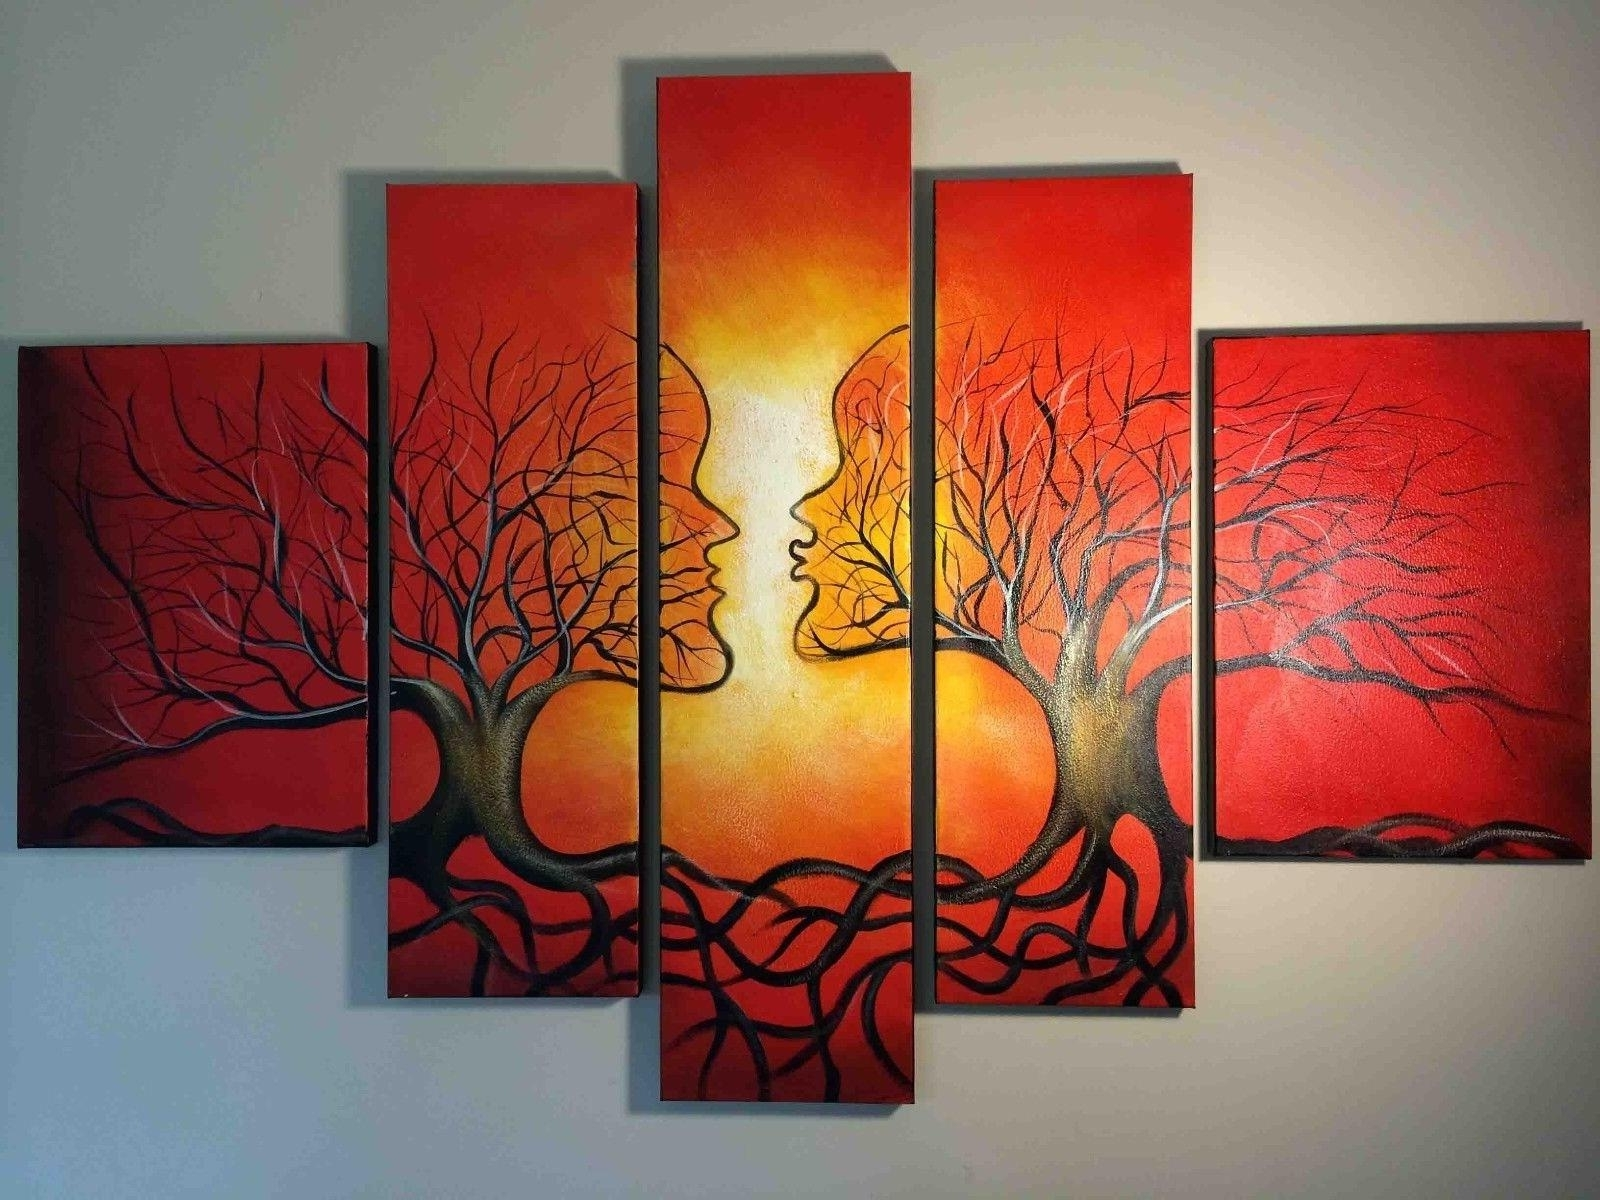 Newest Wall Art Designs: Abstract Wall Art Red Abstract Oil Painting Regarding Abstract Wall Art (Gallery 14 of 15)